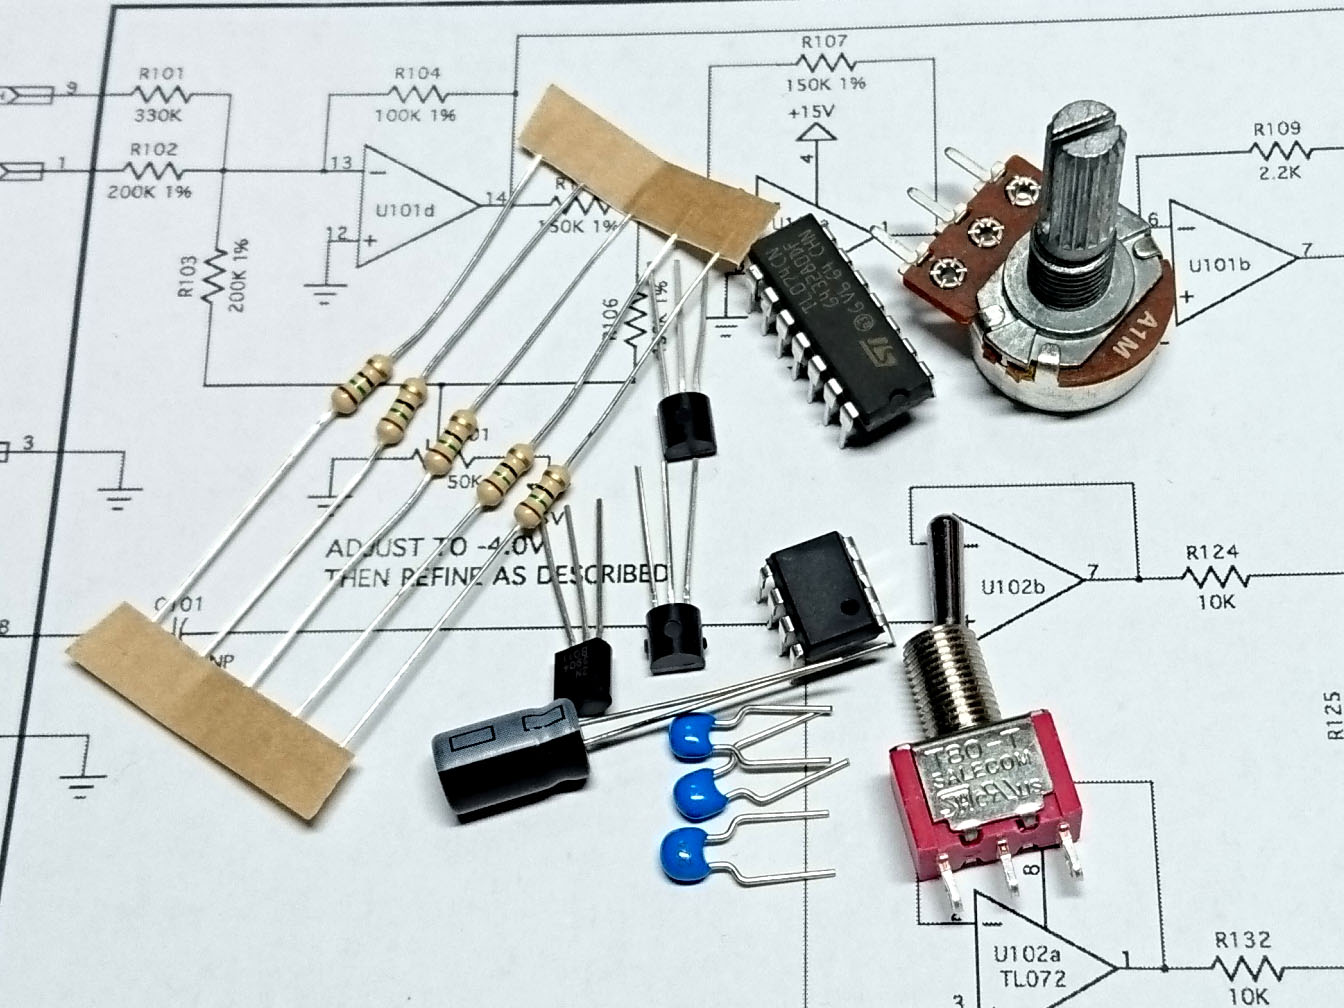 Yusynth Minimoog Transistor Ladder Vcf Module Bare Electronics Parts Kit Circuit